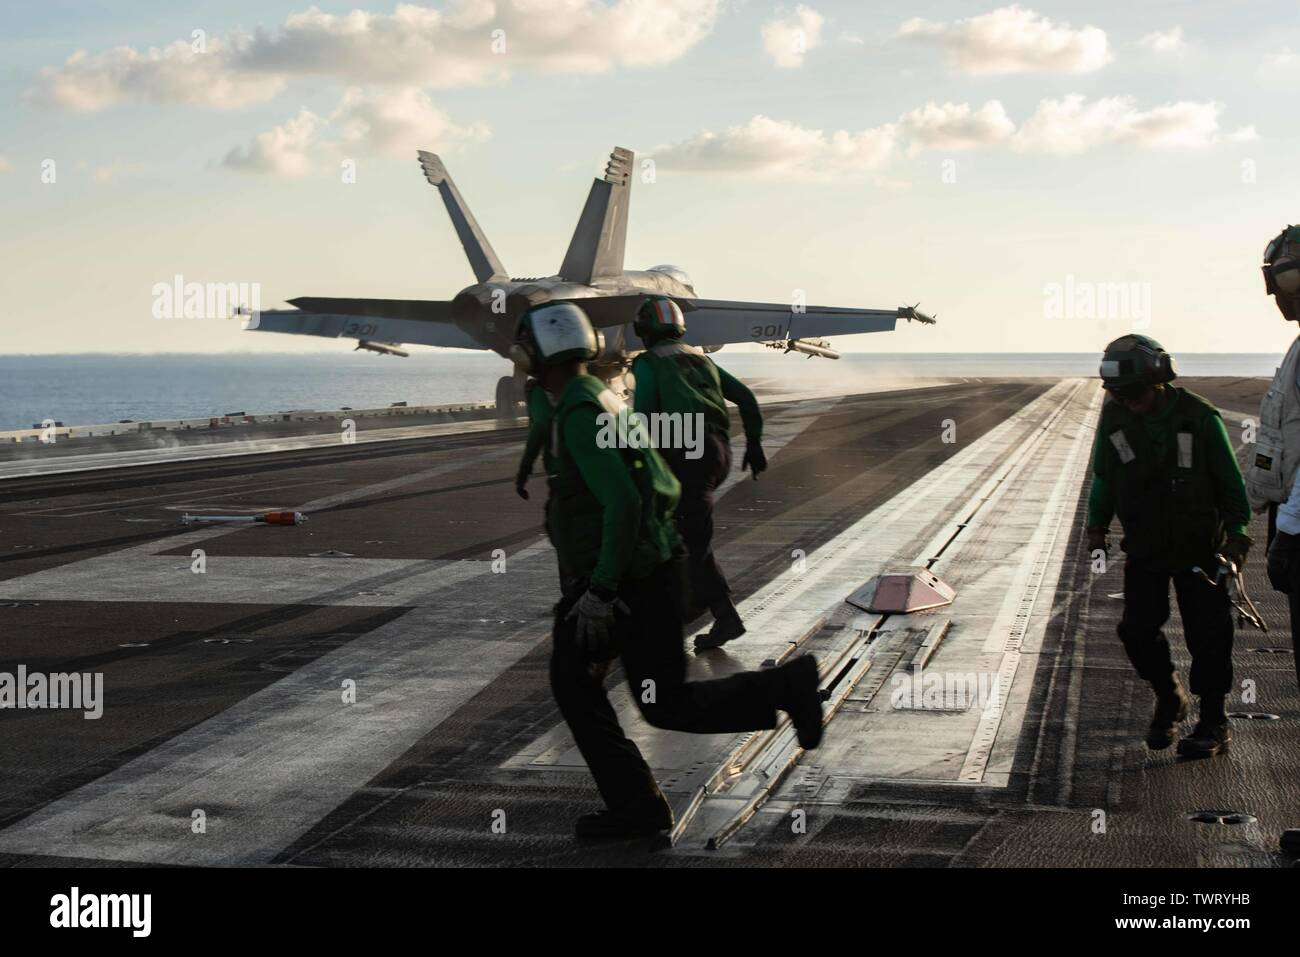 190620-N-CL027-2299  SOUTH CHINA SEA (June 20, 2019) Sailors run to retrieve the holdback bar on the flight deck aboard the Navy's forward-deployed aircraft carrier USS Ronald Reagan (CVN 76) during flight operations. The holdback bar is used to hold back the aircraft prior to its launch from the steam catapults. Ronald Reagan, the flagship of Carrier Strike Group 5, provides a combat-ready force that protects and defends the collective maritime interests of its allies and partners in the Indo-Pacific region. (U.S. Navy photo by Mass Communication Specialist 2nd Class Janweb B. Lagazo/Released - Stock Image